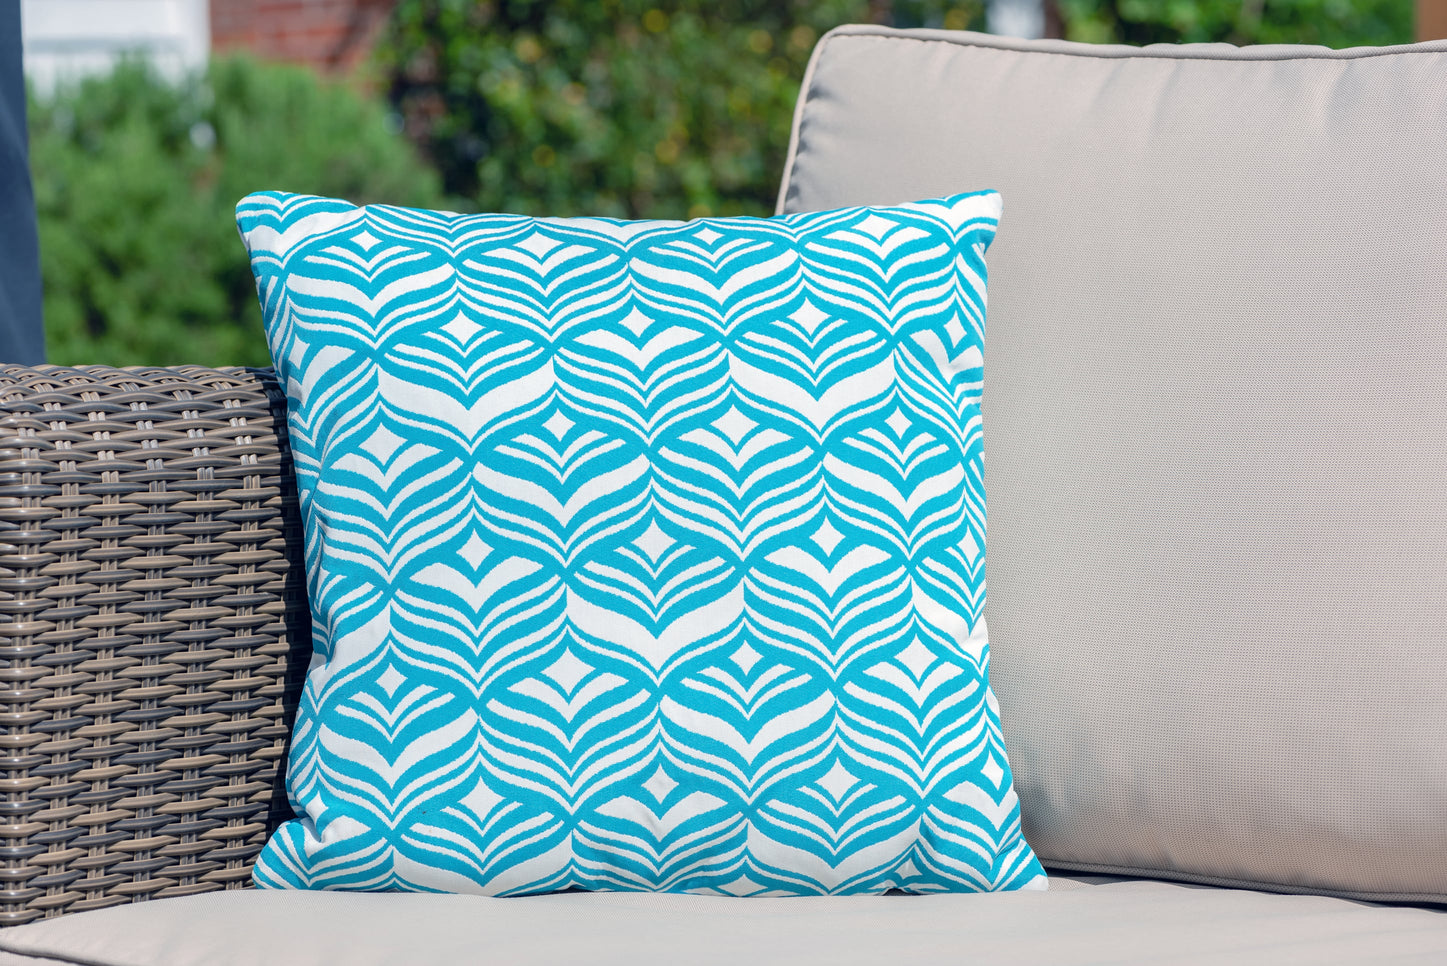 Luxury Cushion in Tulip Turquoise